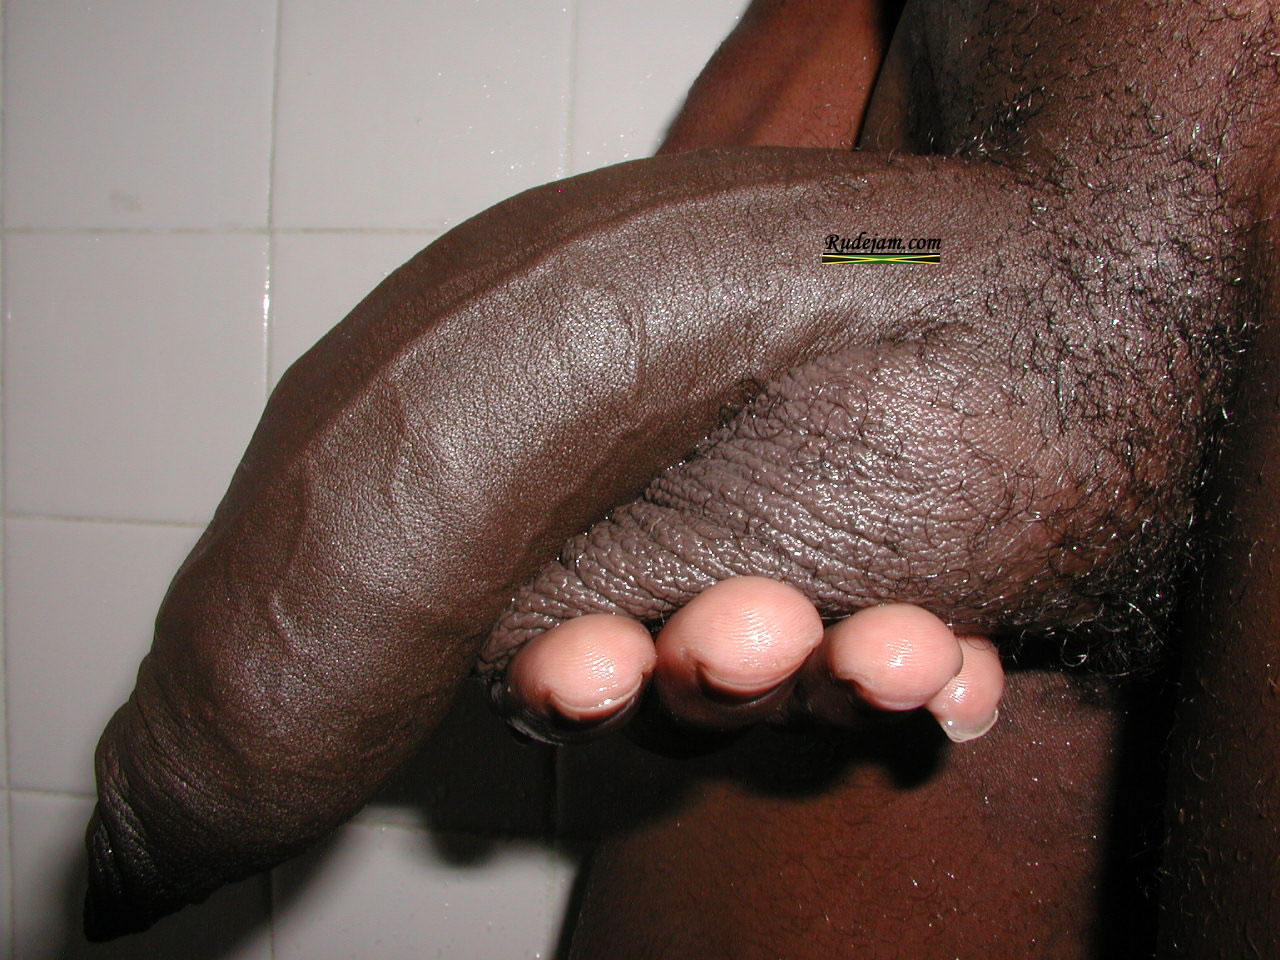 African long dicks gay porn hot boy sucks 10